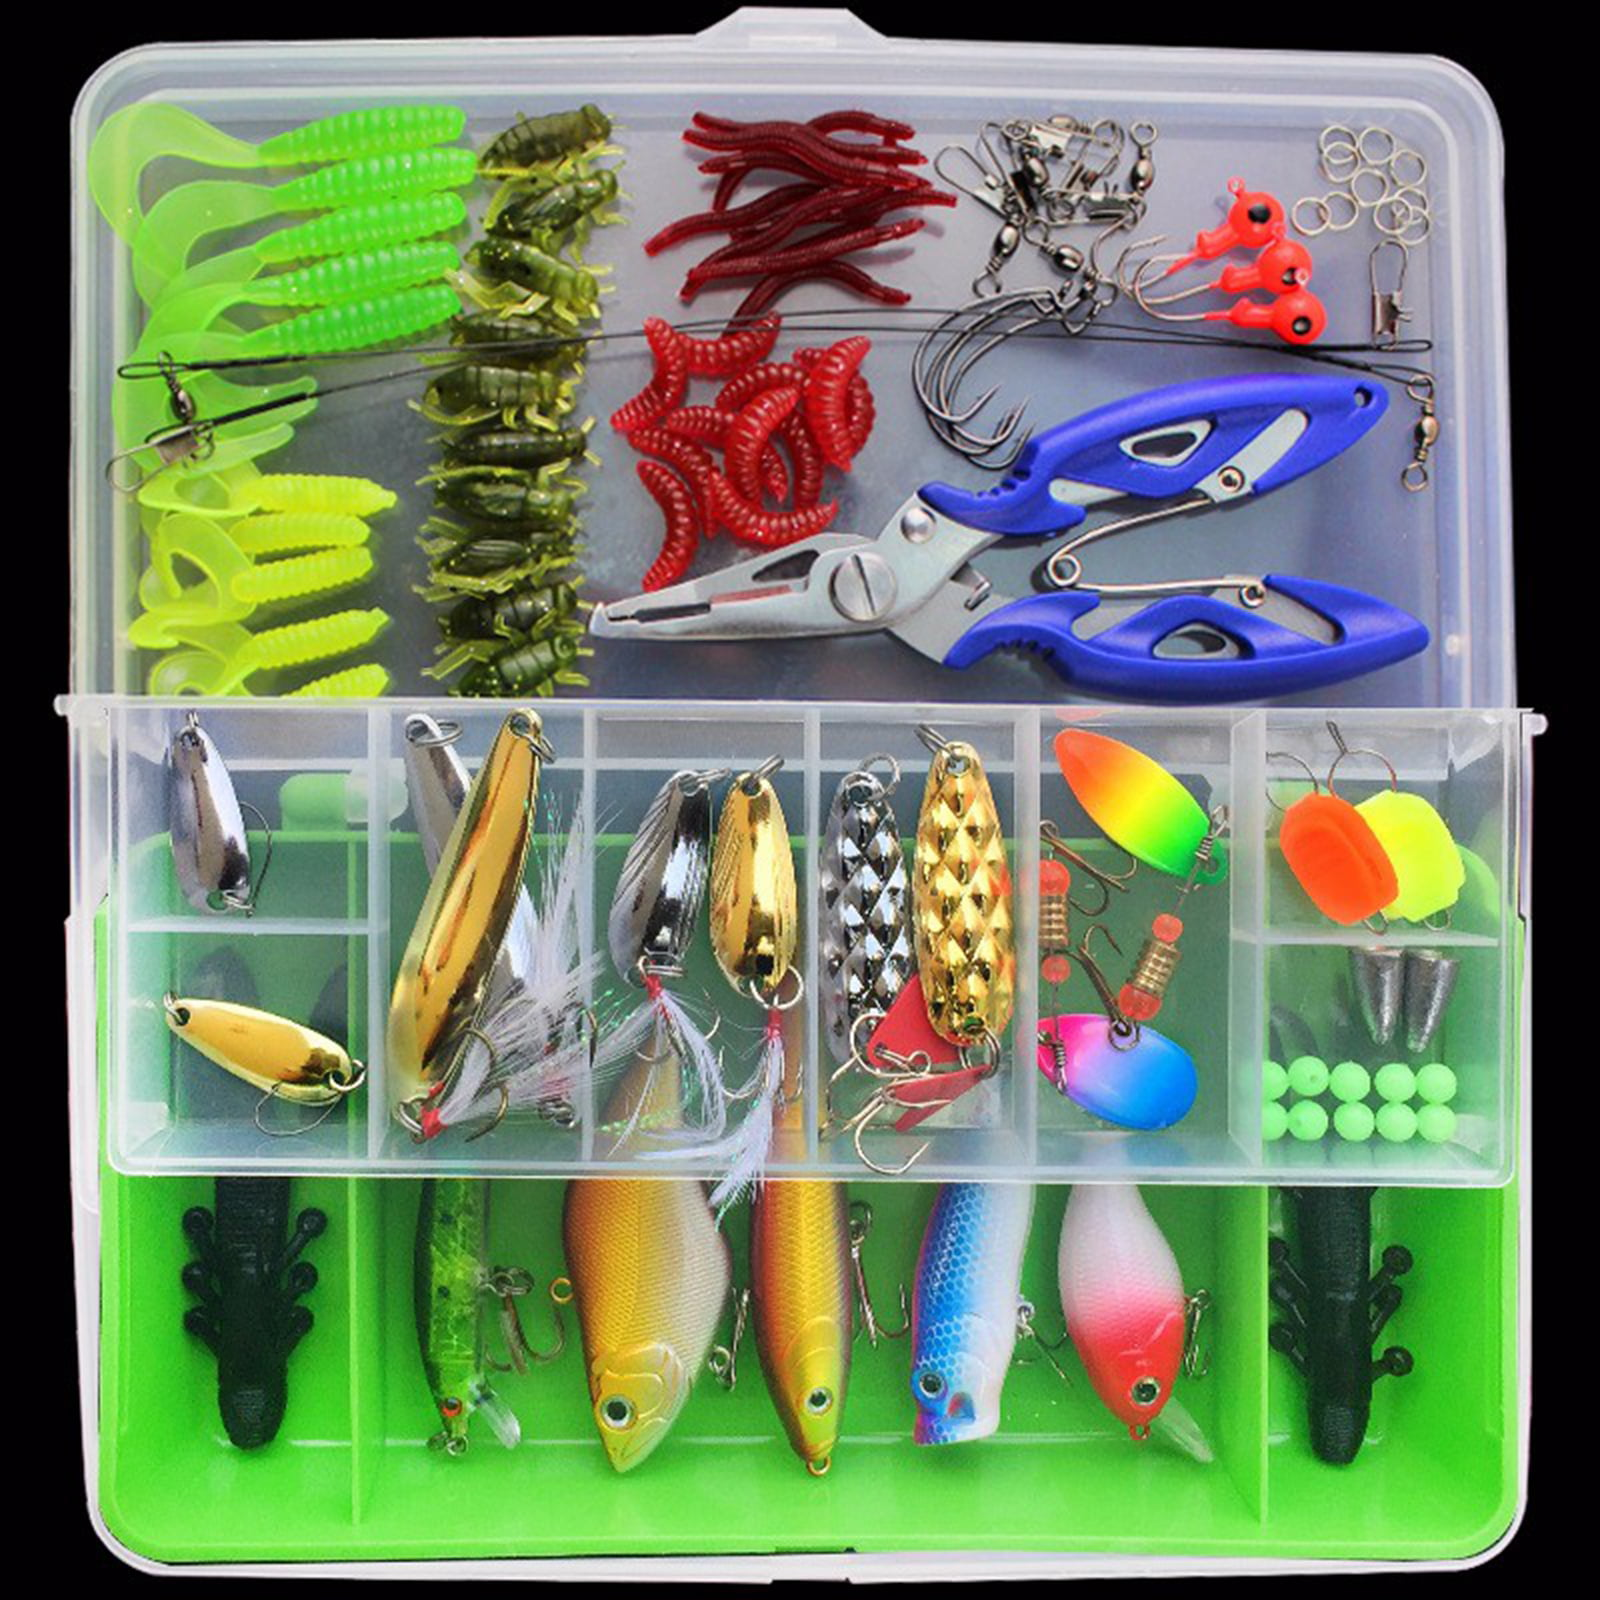 Fishing Accessories 100Pcs Fishing Kit Hard Soft Bait Lure Fishhooks Tools Tackle Box Set for Saltwater & Freshwater... by